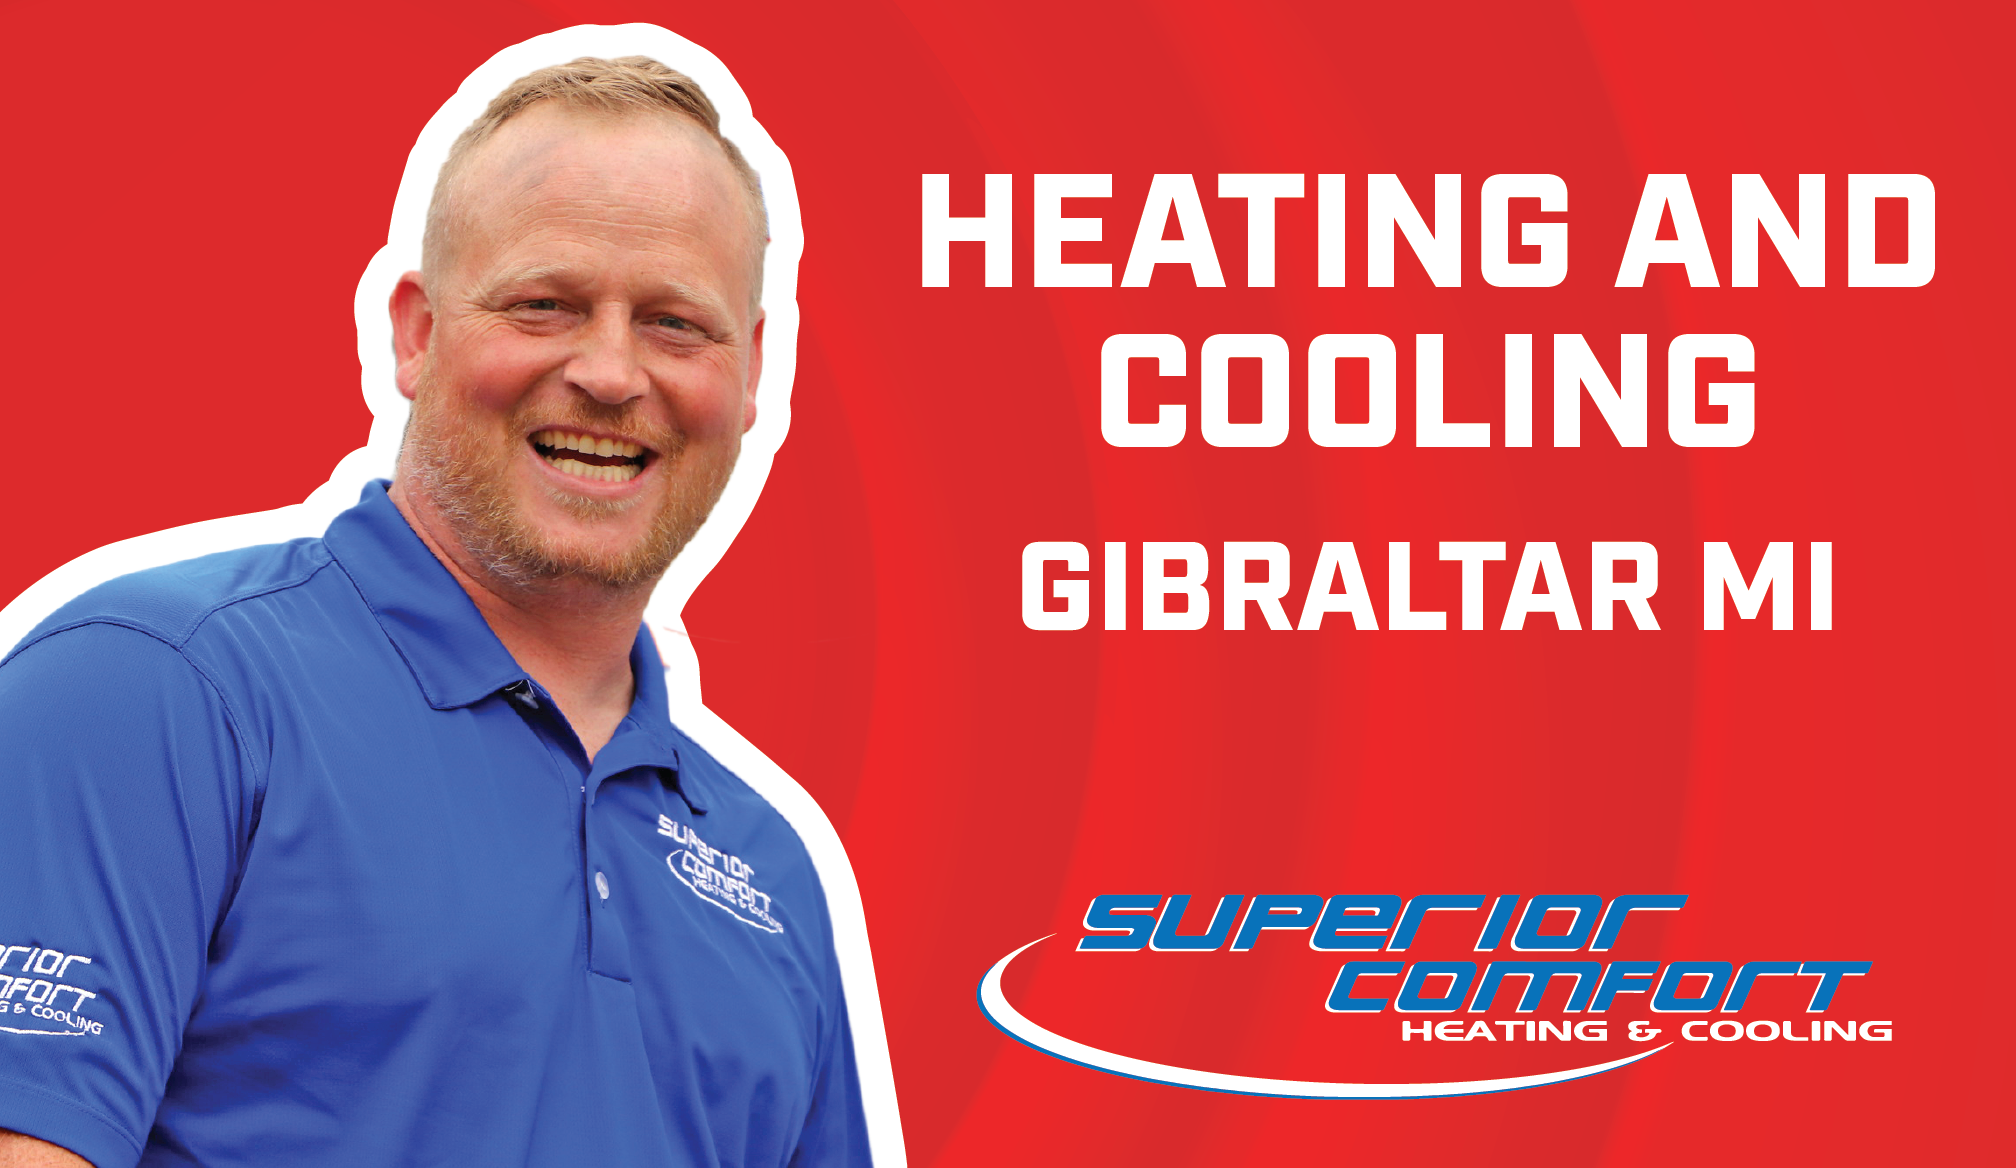 Heating and Cooling in Gibraltar Michigan